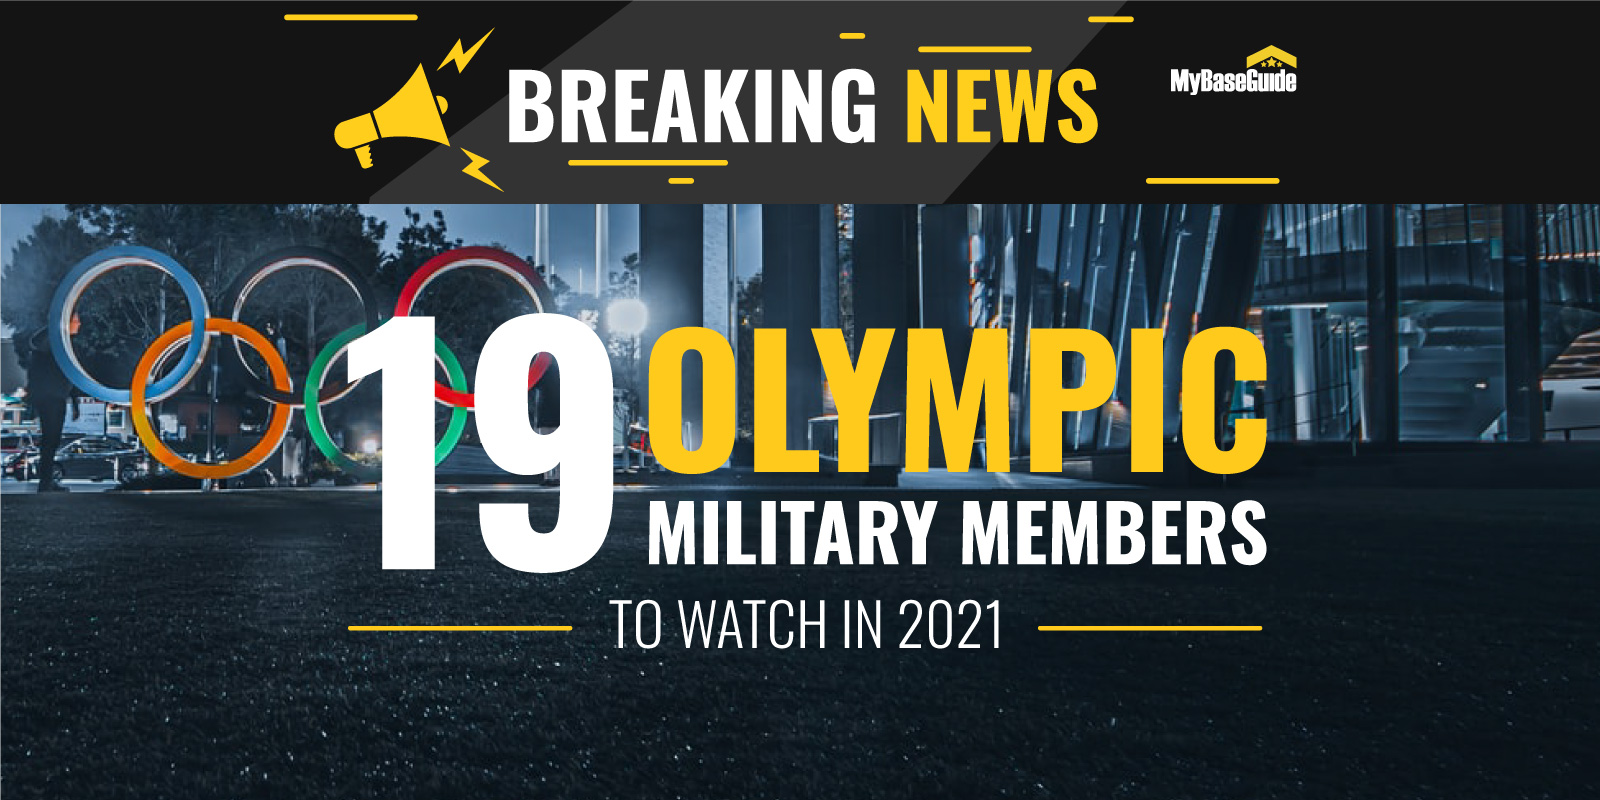 19 Military Members Participating As Athletes in the 2021 Olympics